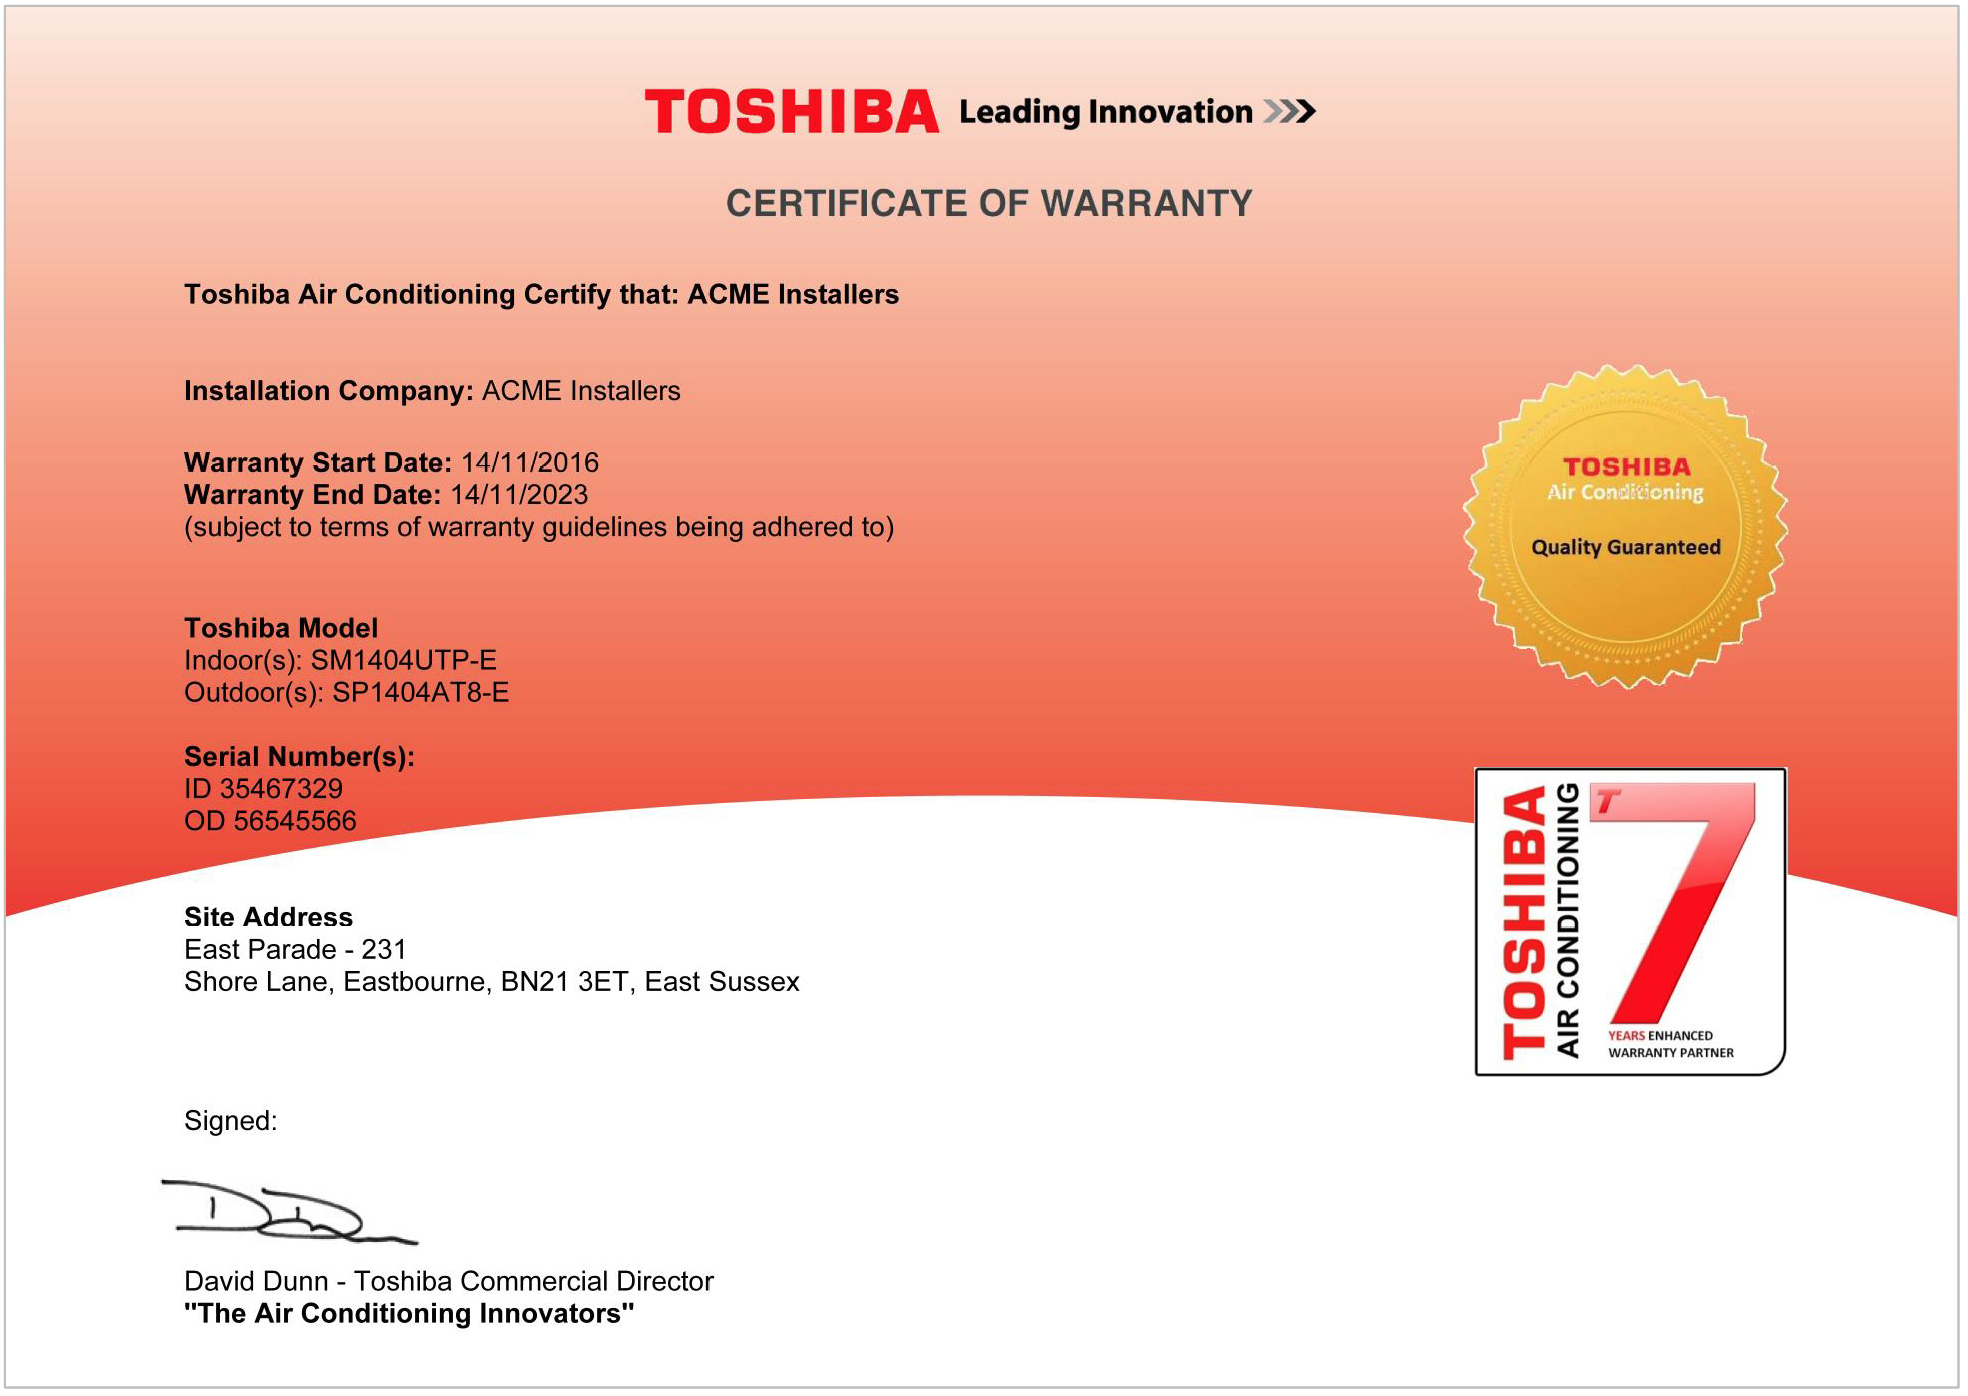 warranty commissioning certificate conditioning breaks platform ground air bsee toshiba copy